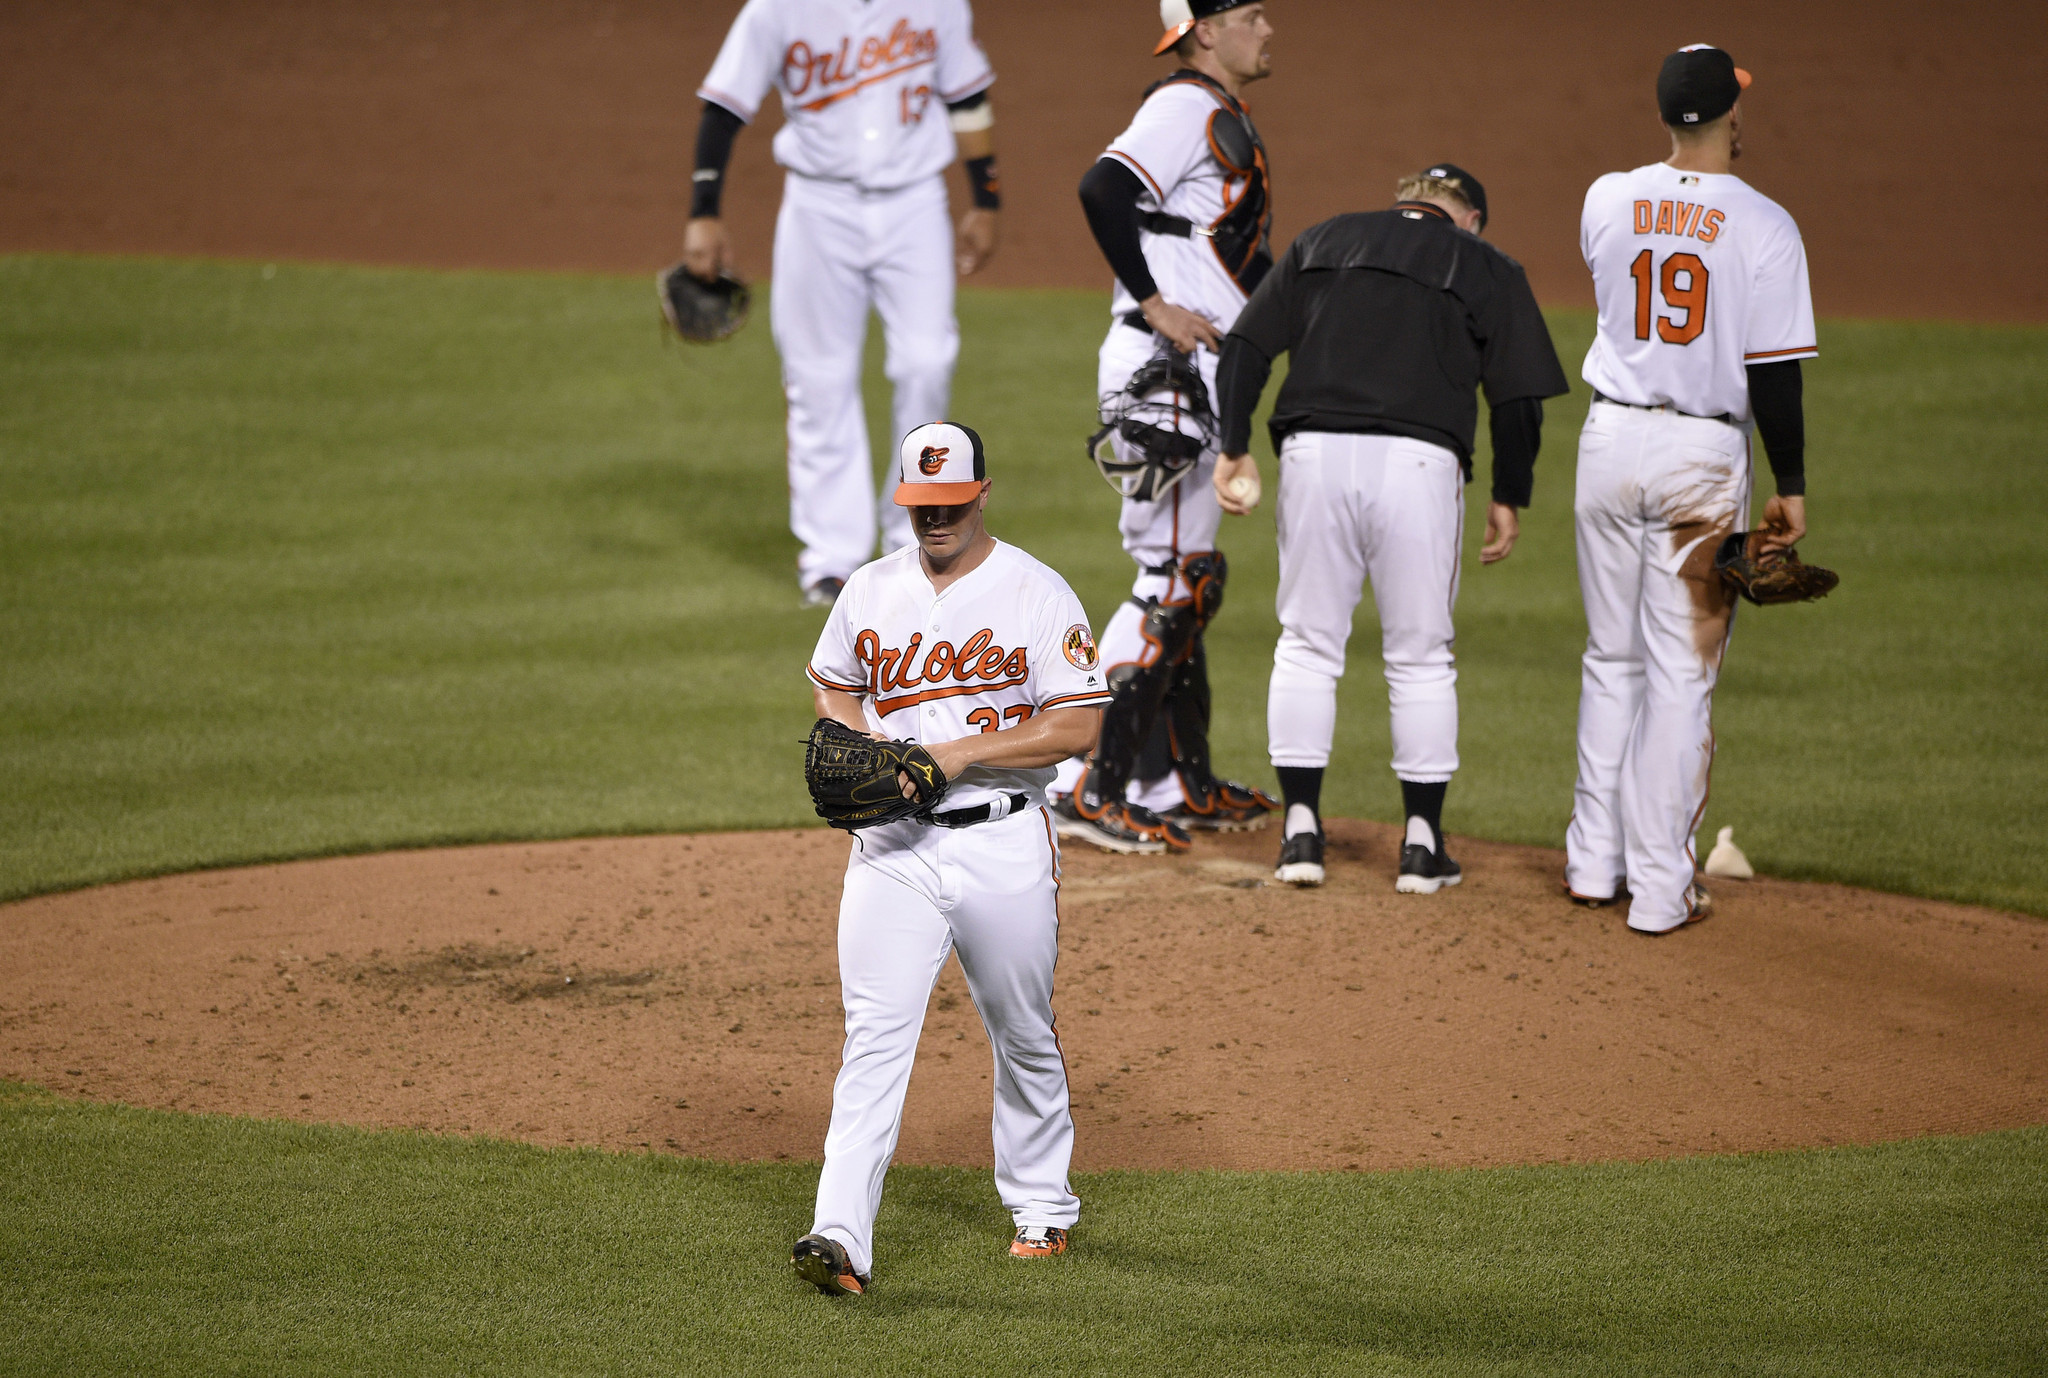 Bal dylan bundy has perfect game derailed by home runs in third start for orioles 20160727.jpg?ixlib=rails 1.1